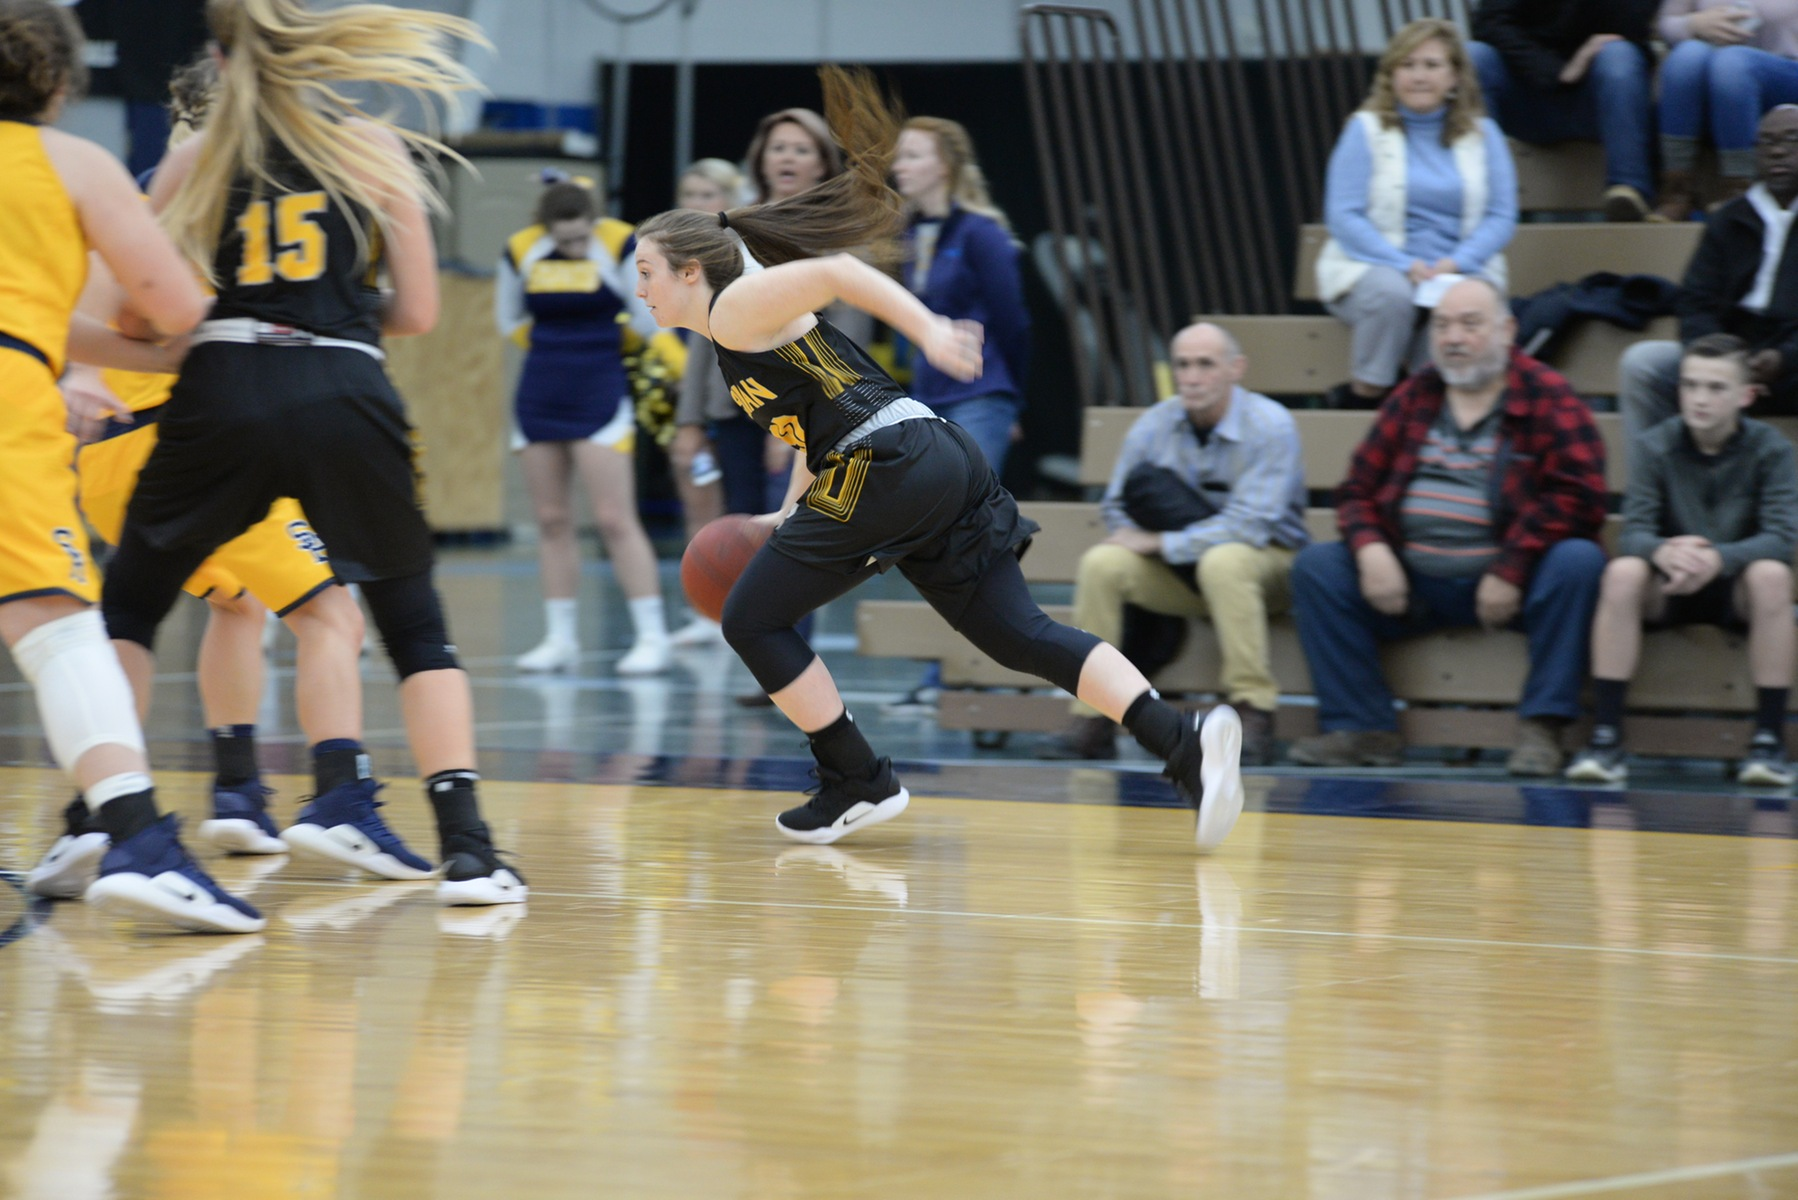 Freshman Rylee Campbell drives the baseline. (Action photo by Patrick Stewart)